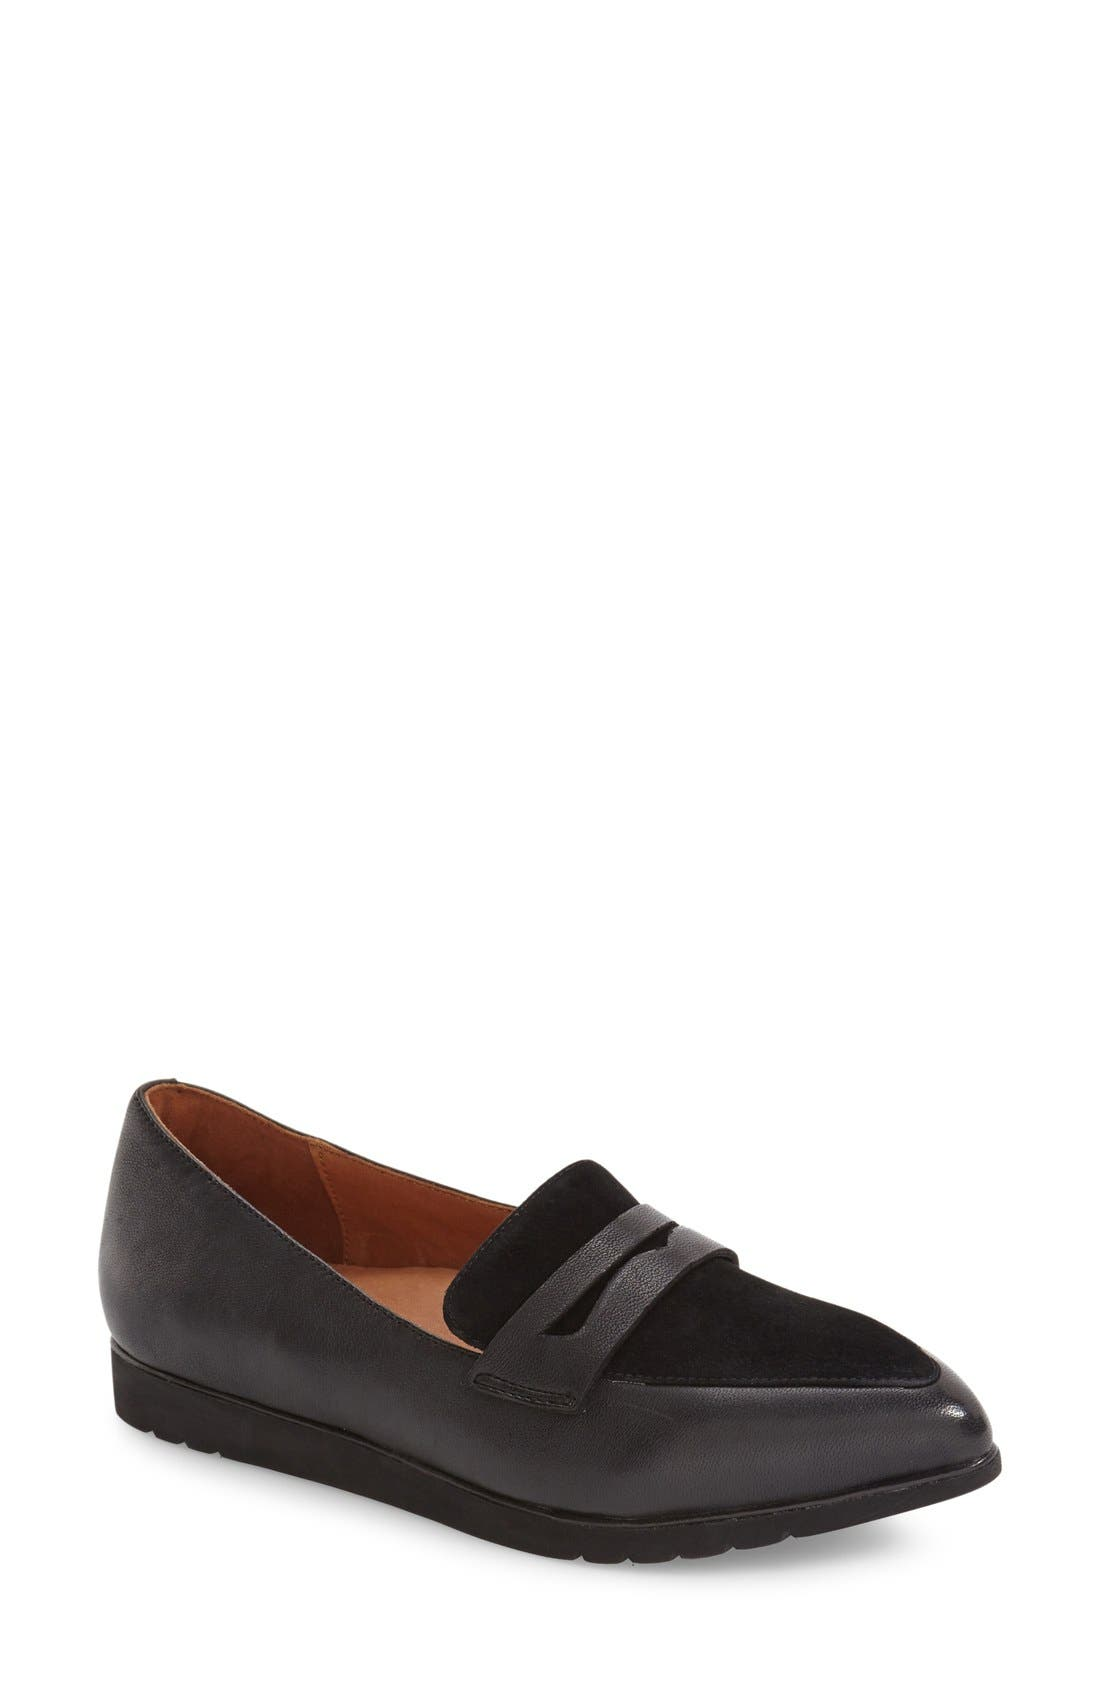 L'Amour des Pieds 'Miamore' Pointy Toe Loafer (Women)